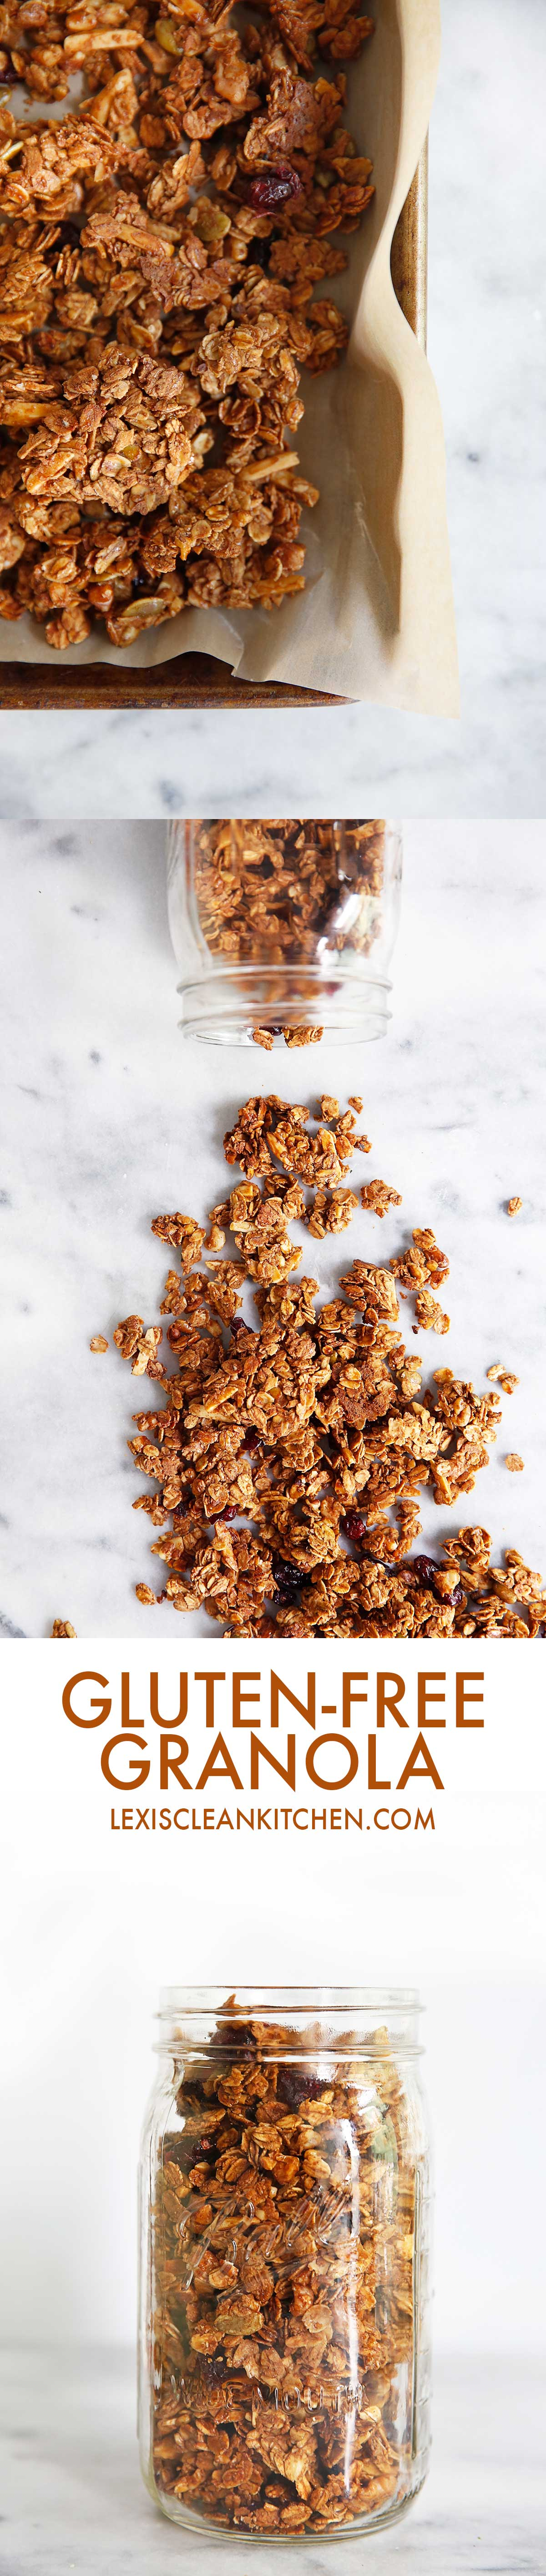 Gluten-free Granola | Lexi's Clean Kitchen